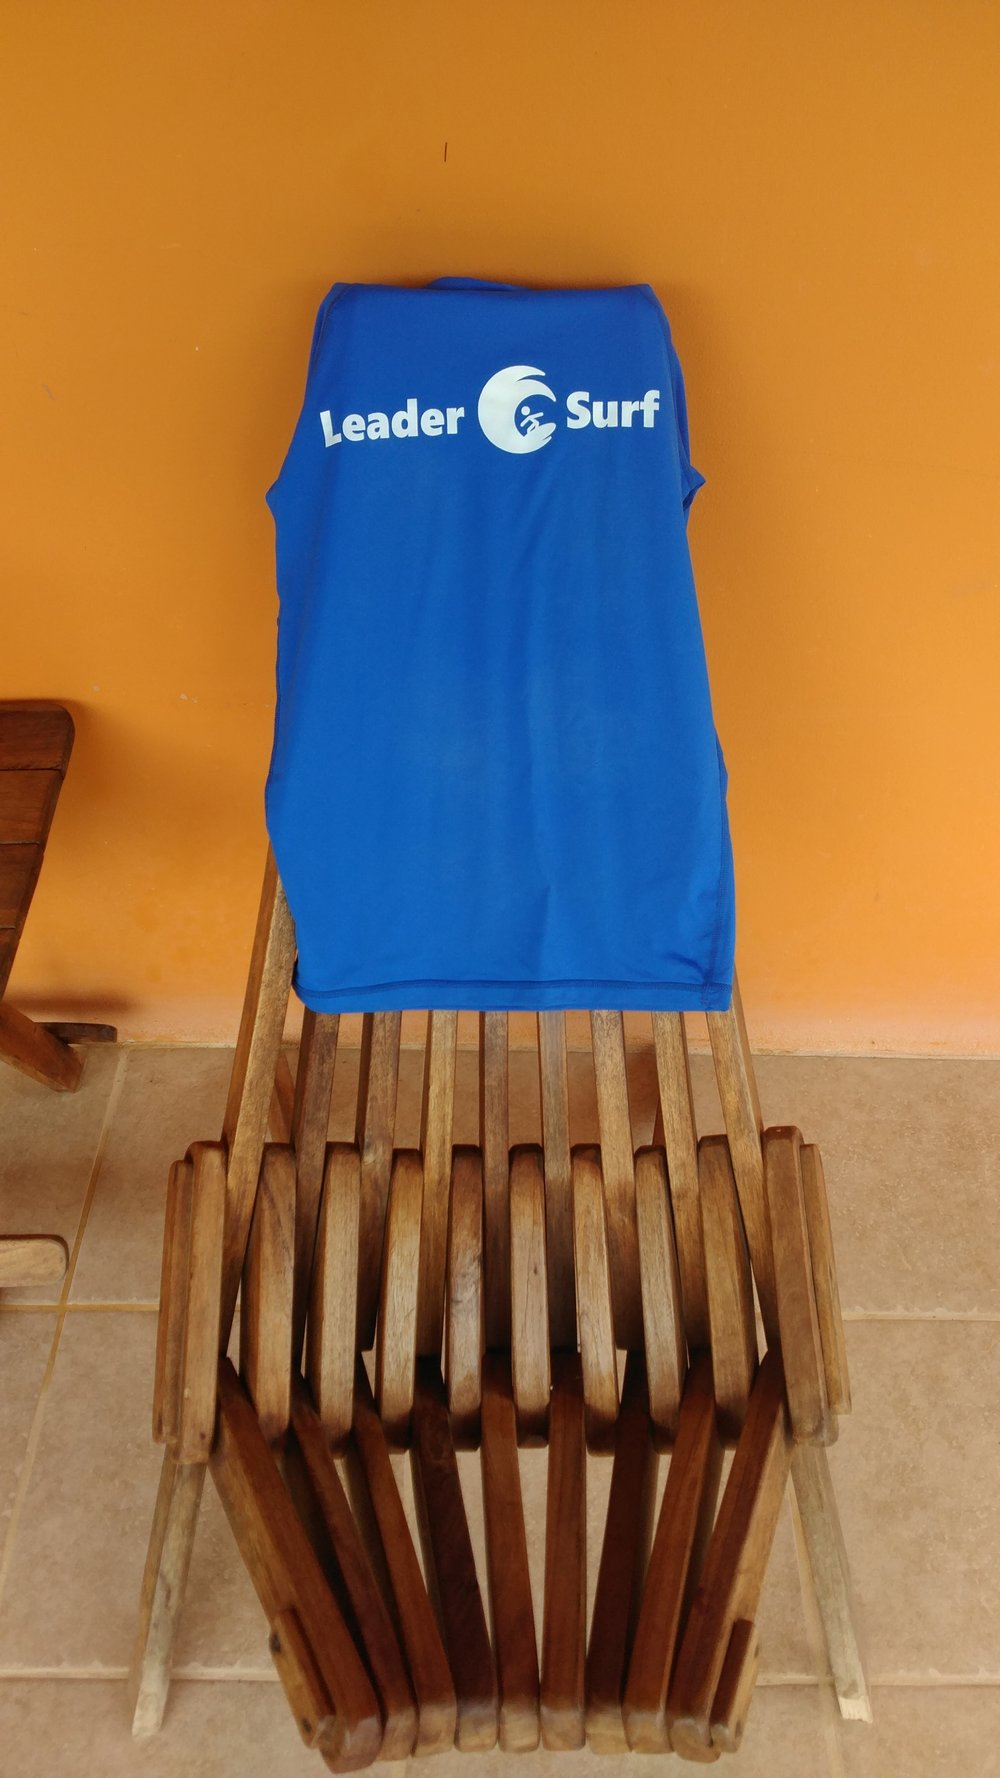 LeaderSurf shirt on chair